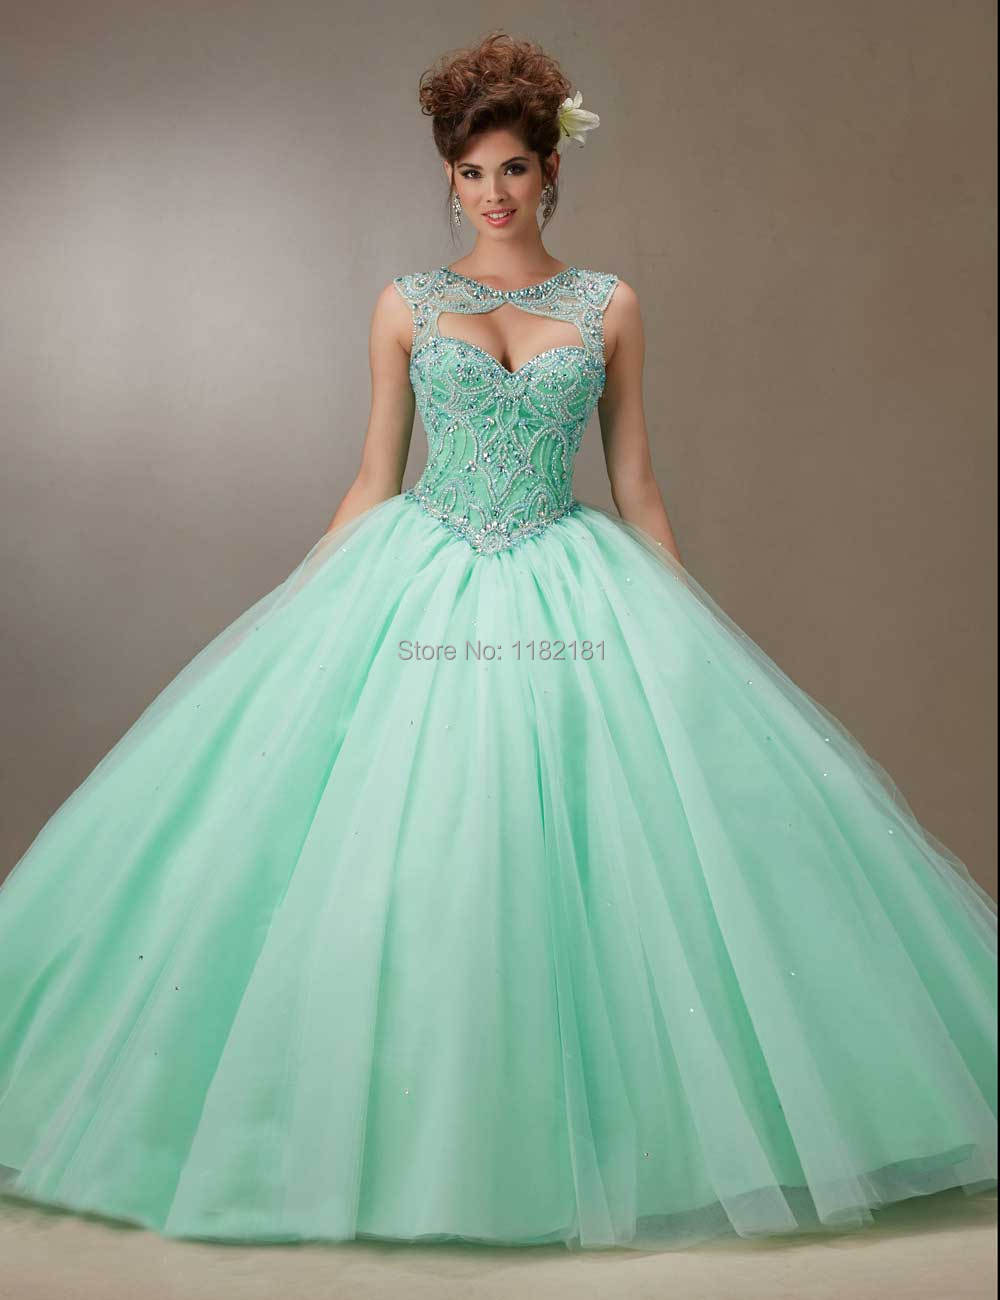 2019 year for lady- Dresses quinceanera mint